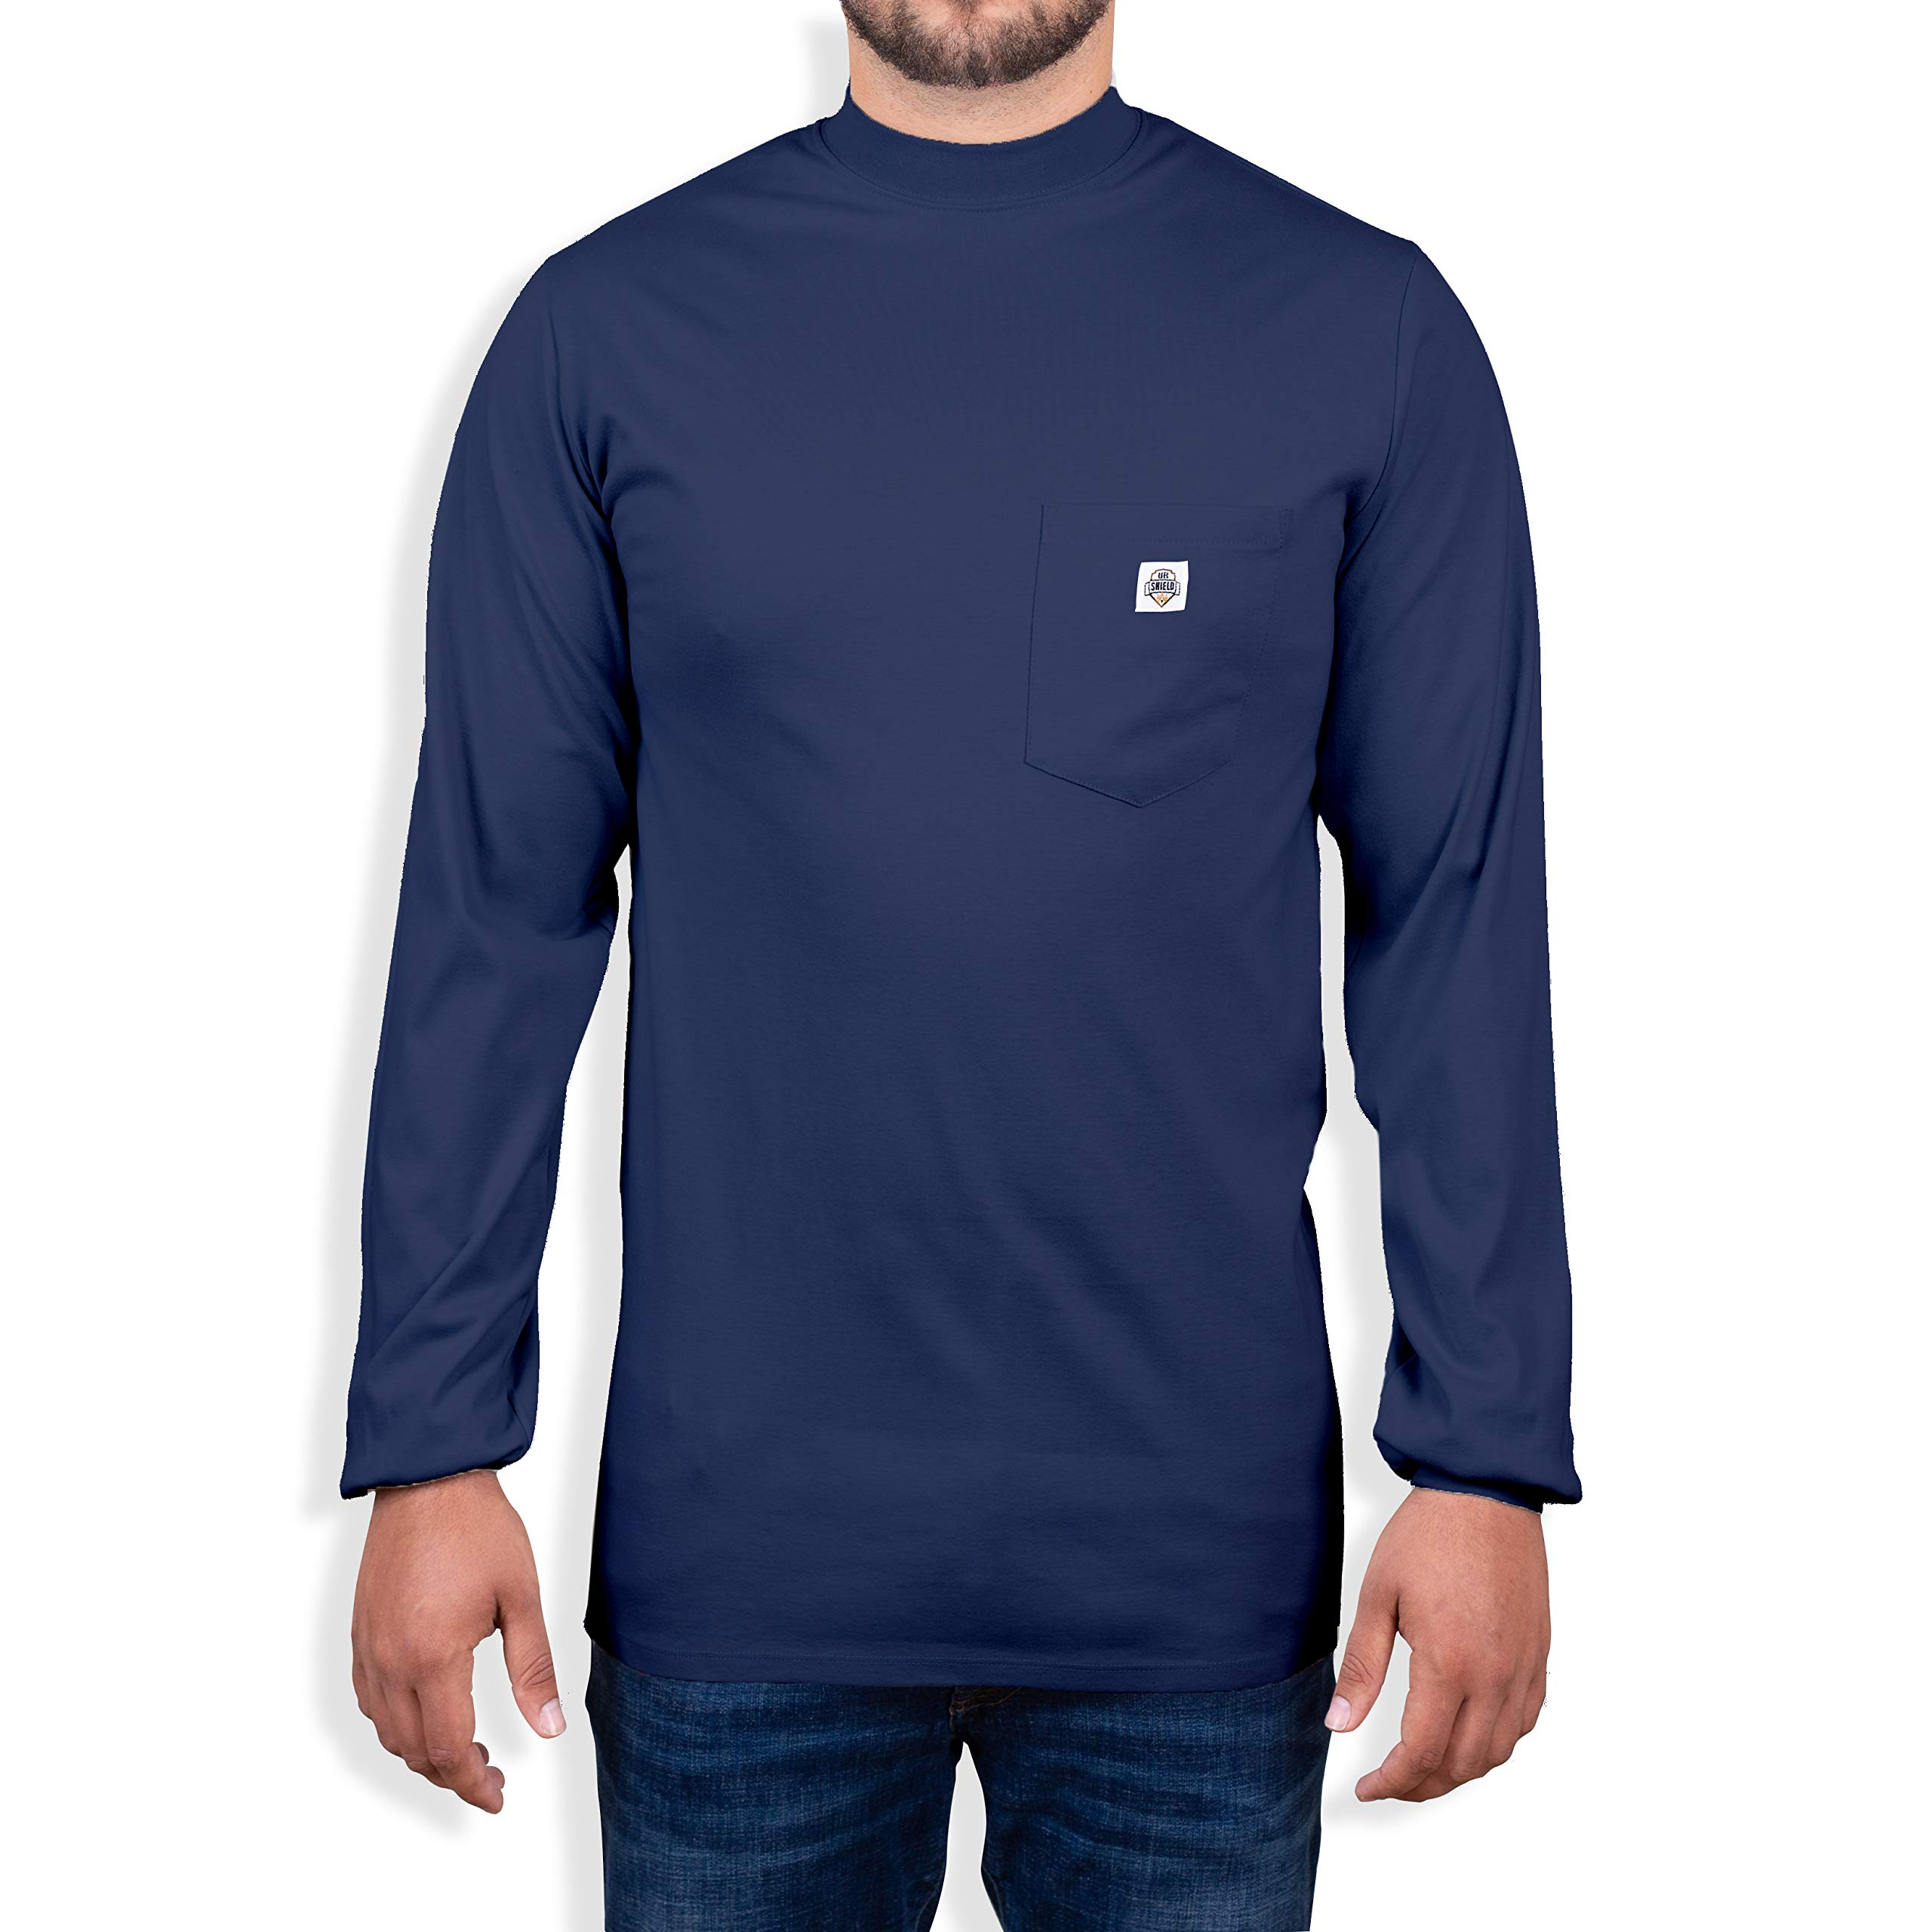 Fire Resistant 7 oz. Cotton Long Sleeve Henley - FR T-Shirt Defies Melting, Dripping, After-Burning - Fire Retardant Clothing for Electricians, Welders, More by Ur Shield, Navy by Ur Shield